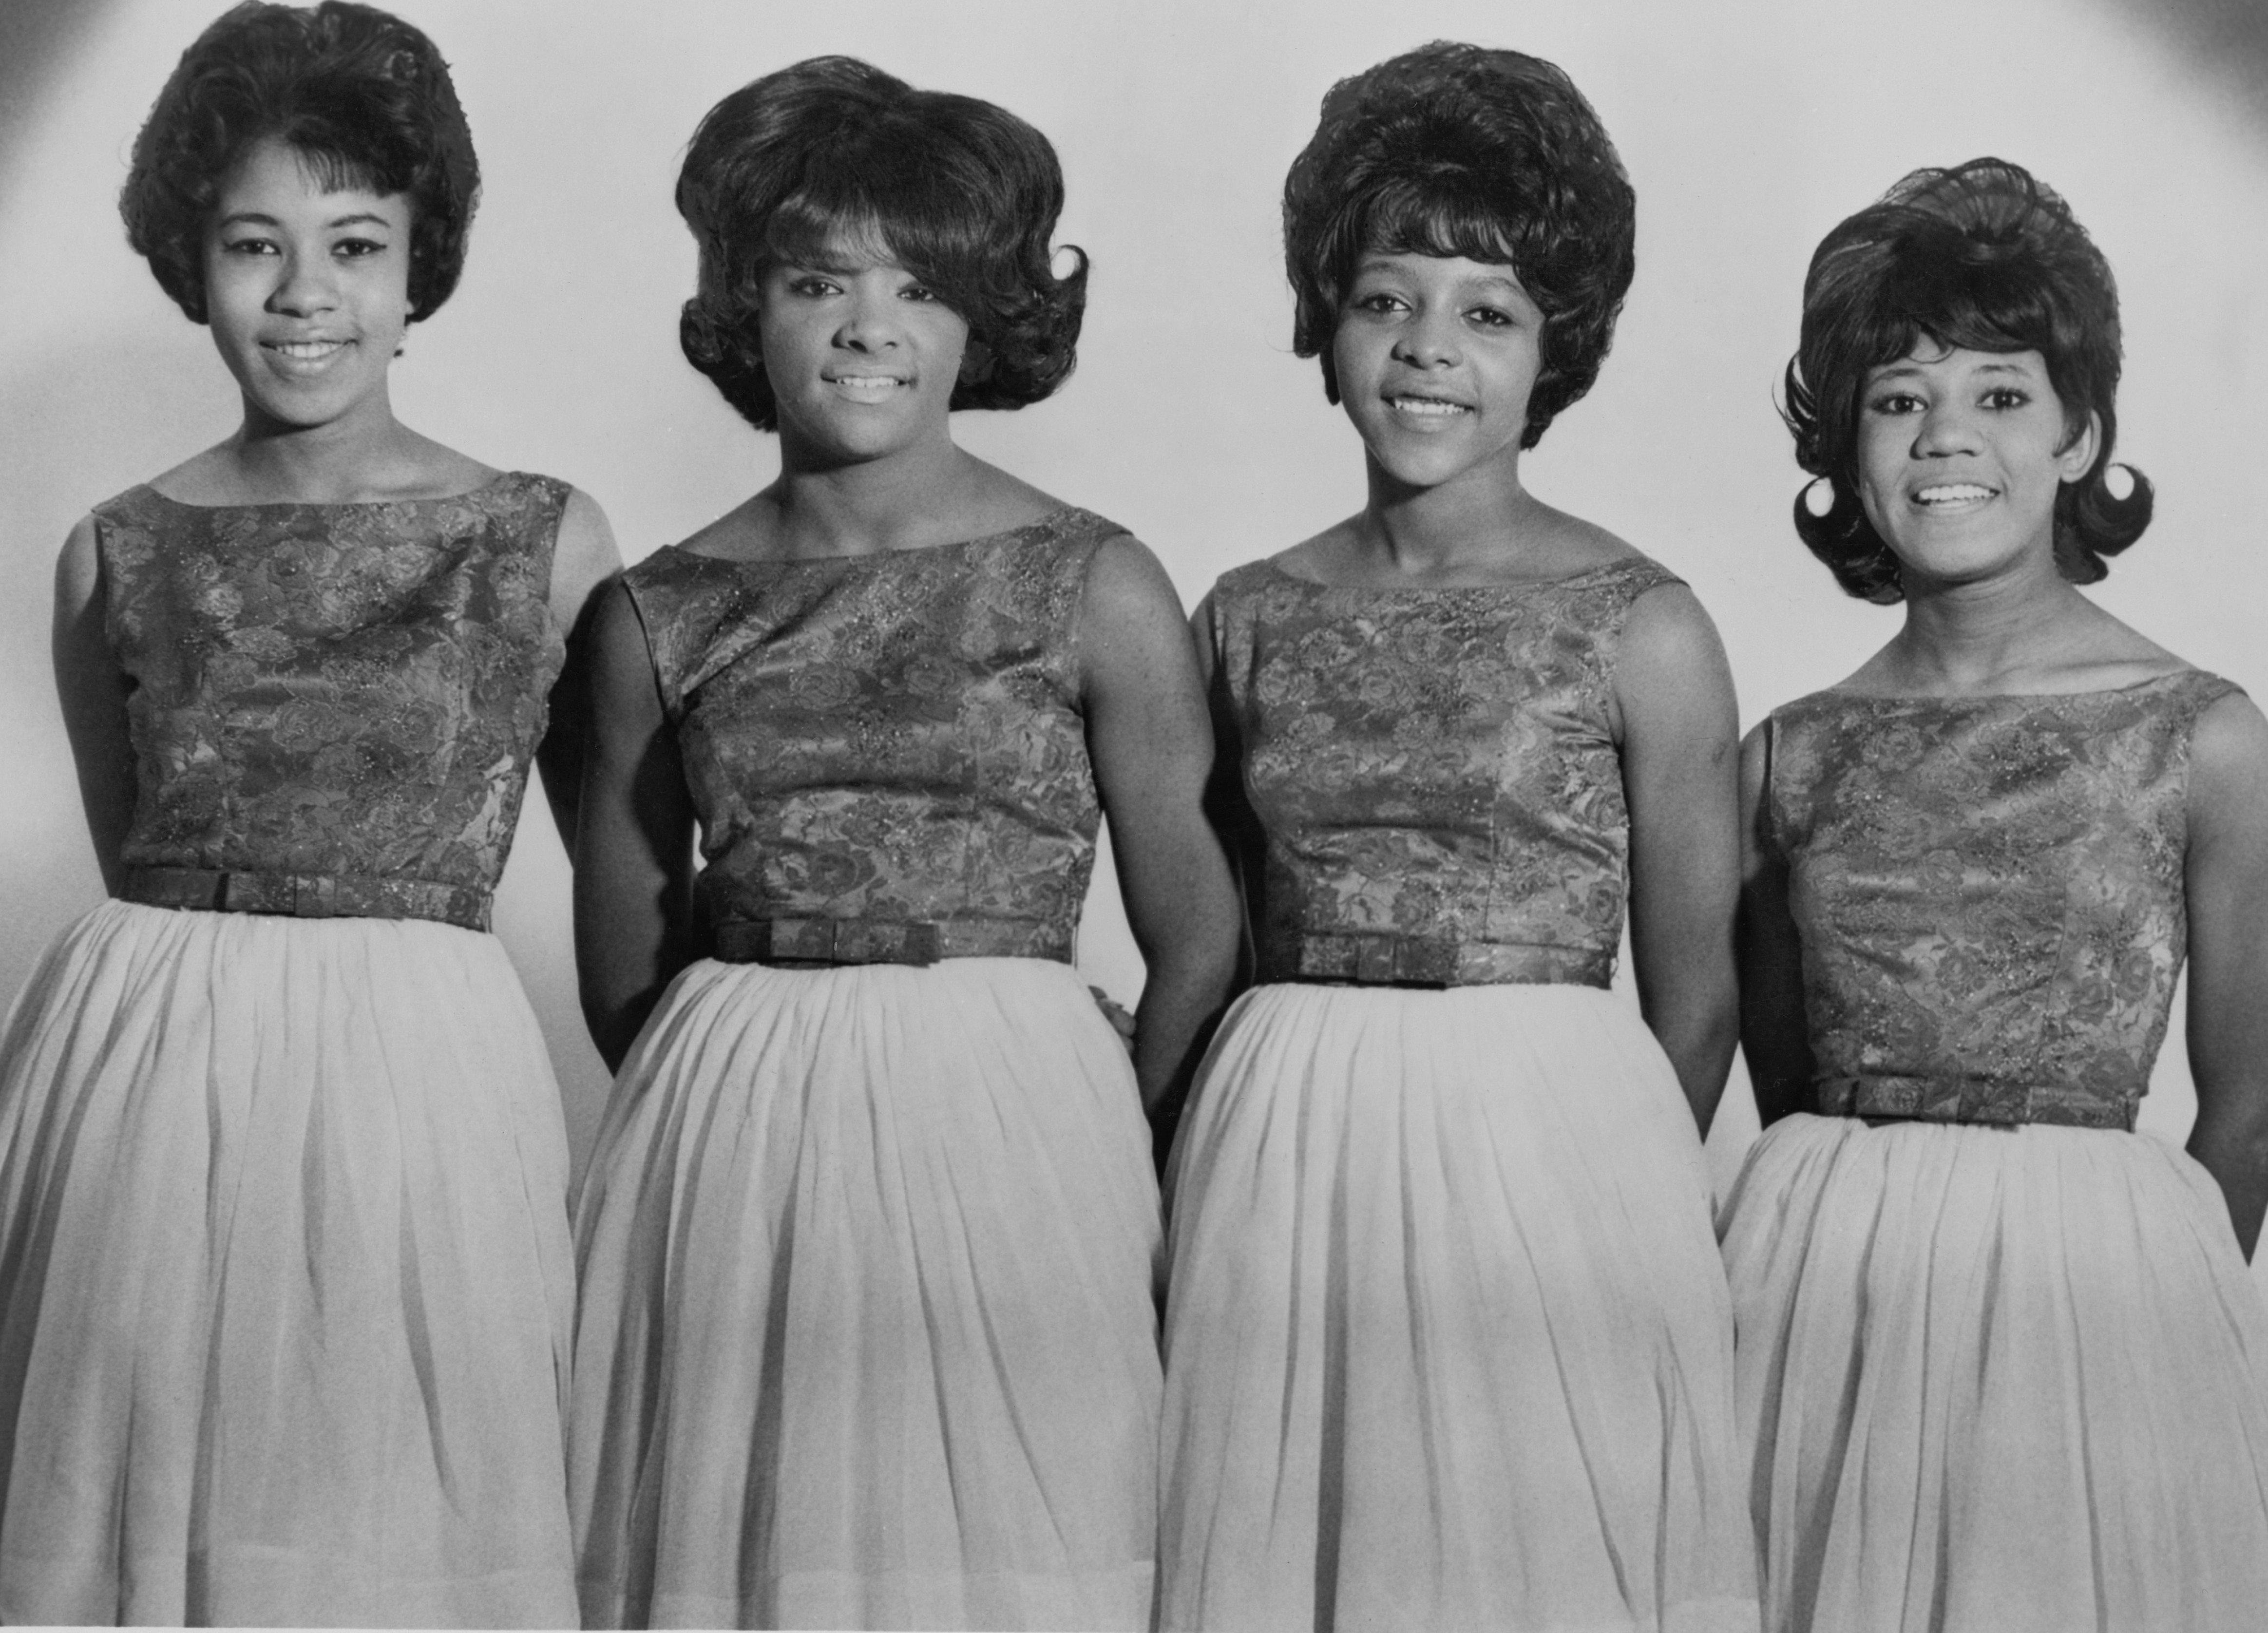 Barbara Alston dead at 74 – Legendary voice behind The Crystals' 1960s hit 'Da Doo Ron Ron' dies after contracting flu